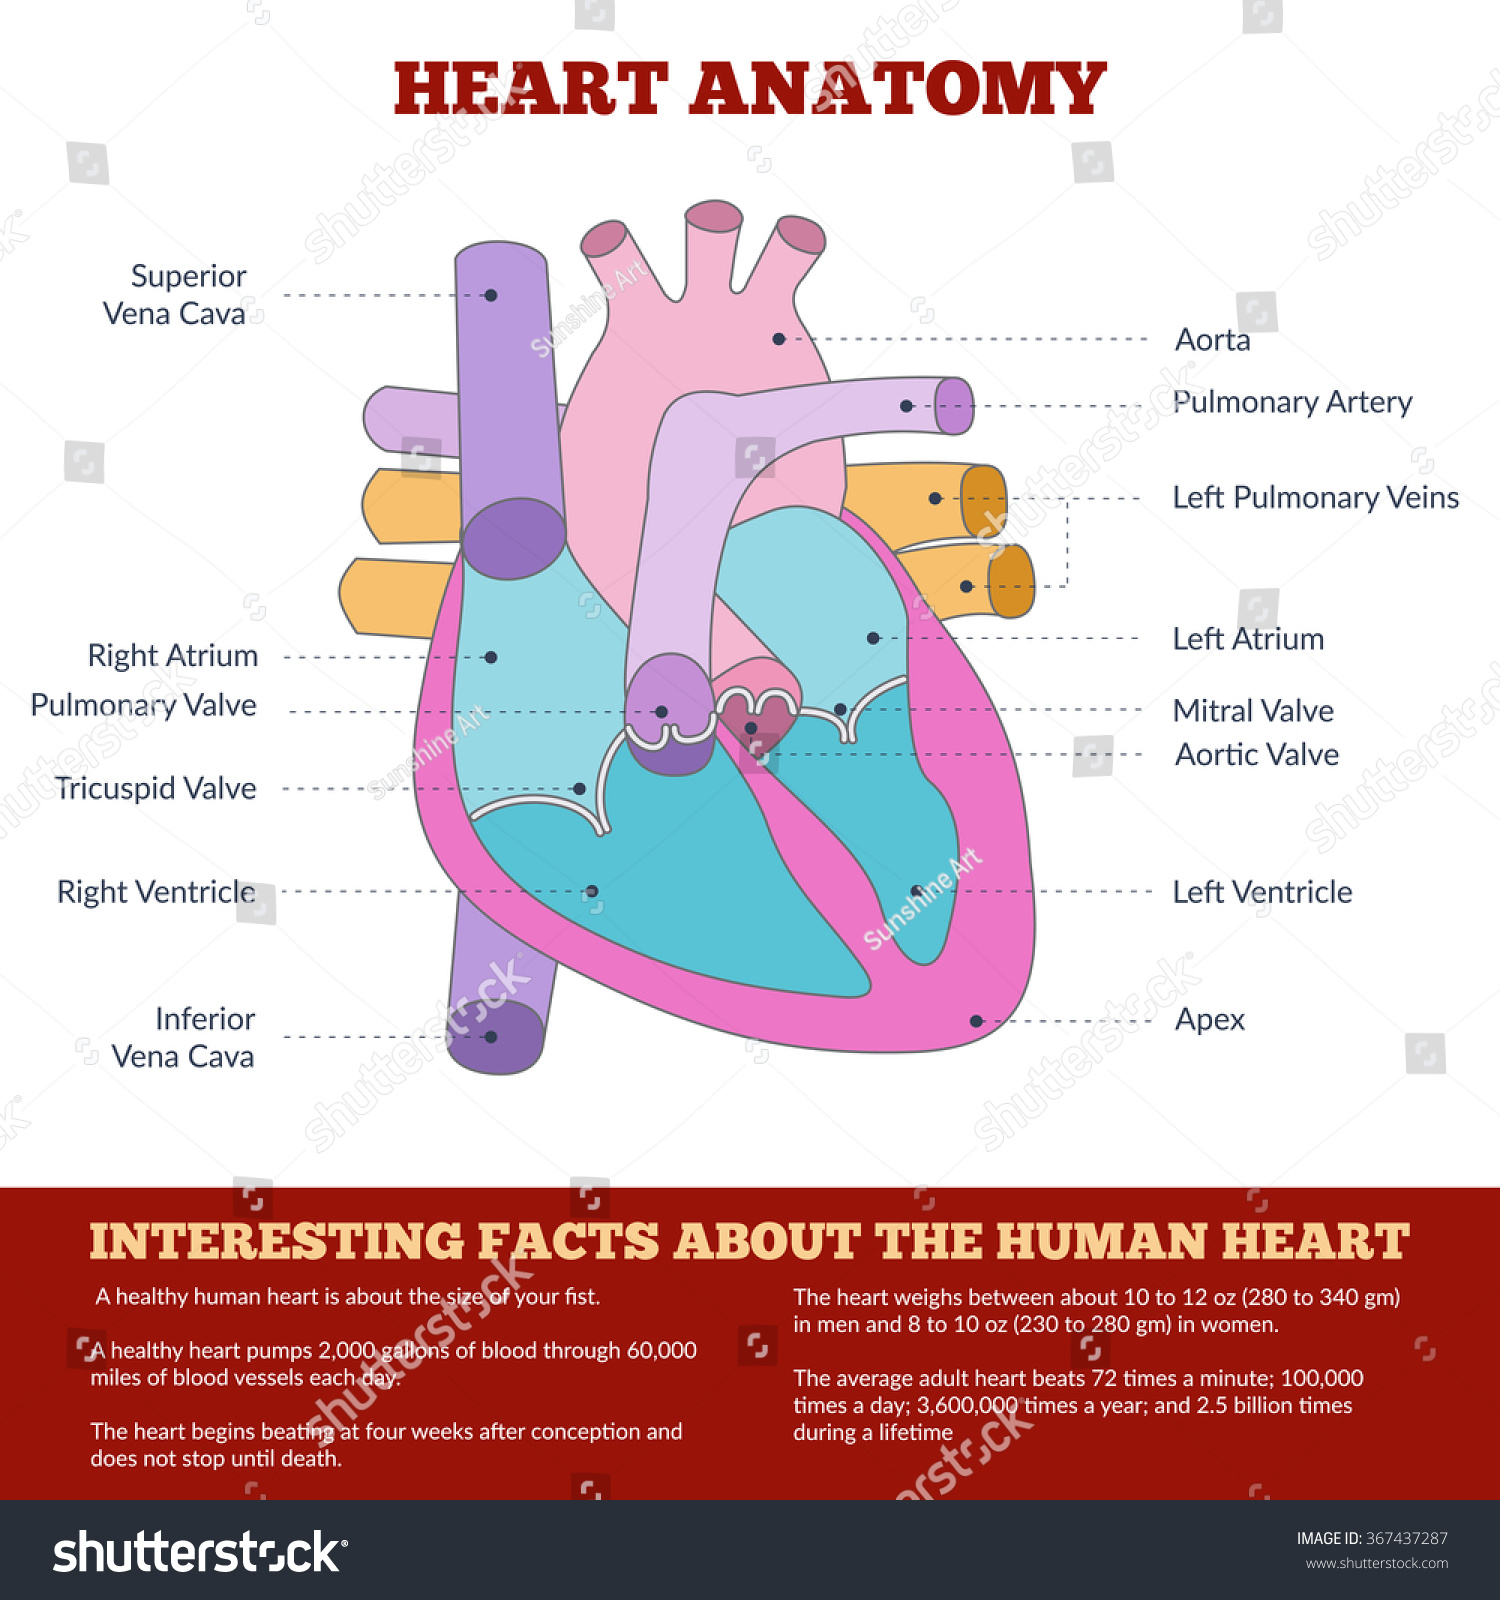 Diagram Of Human Heart Anatomy And Circulatory System Circulation Of Blood Through The Heart